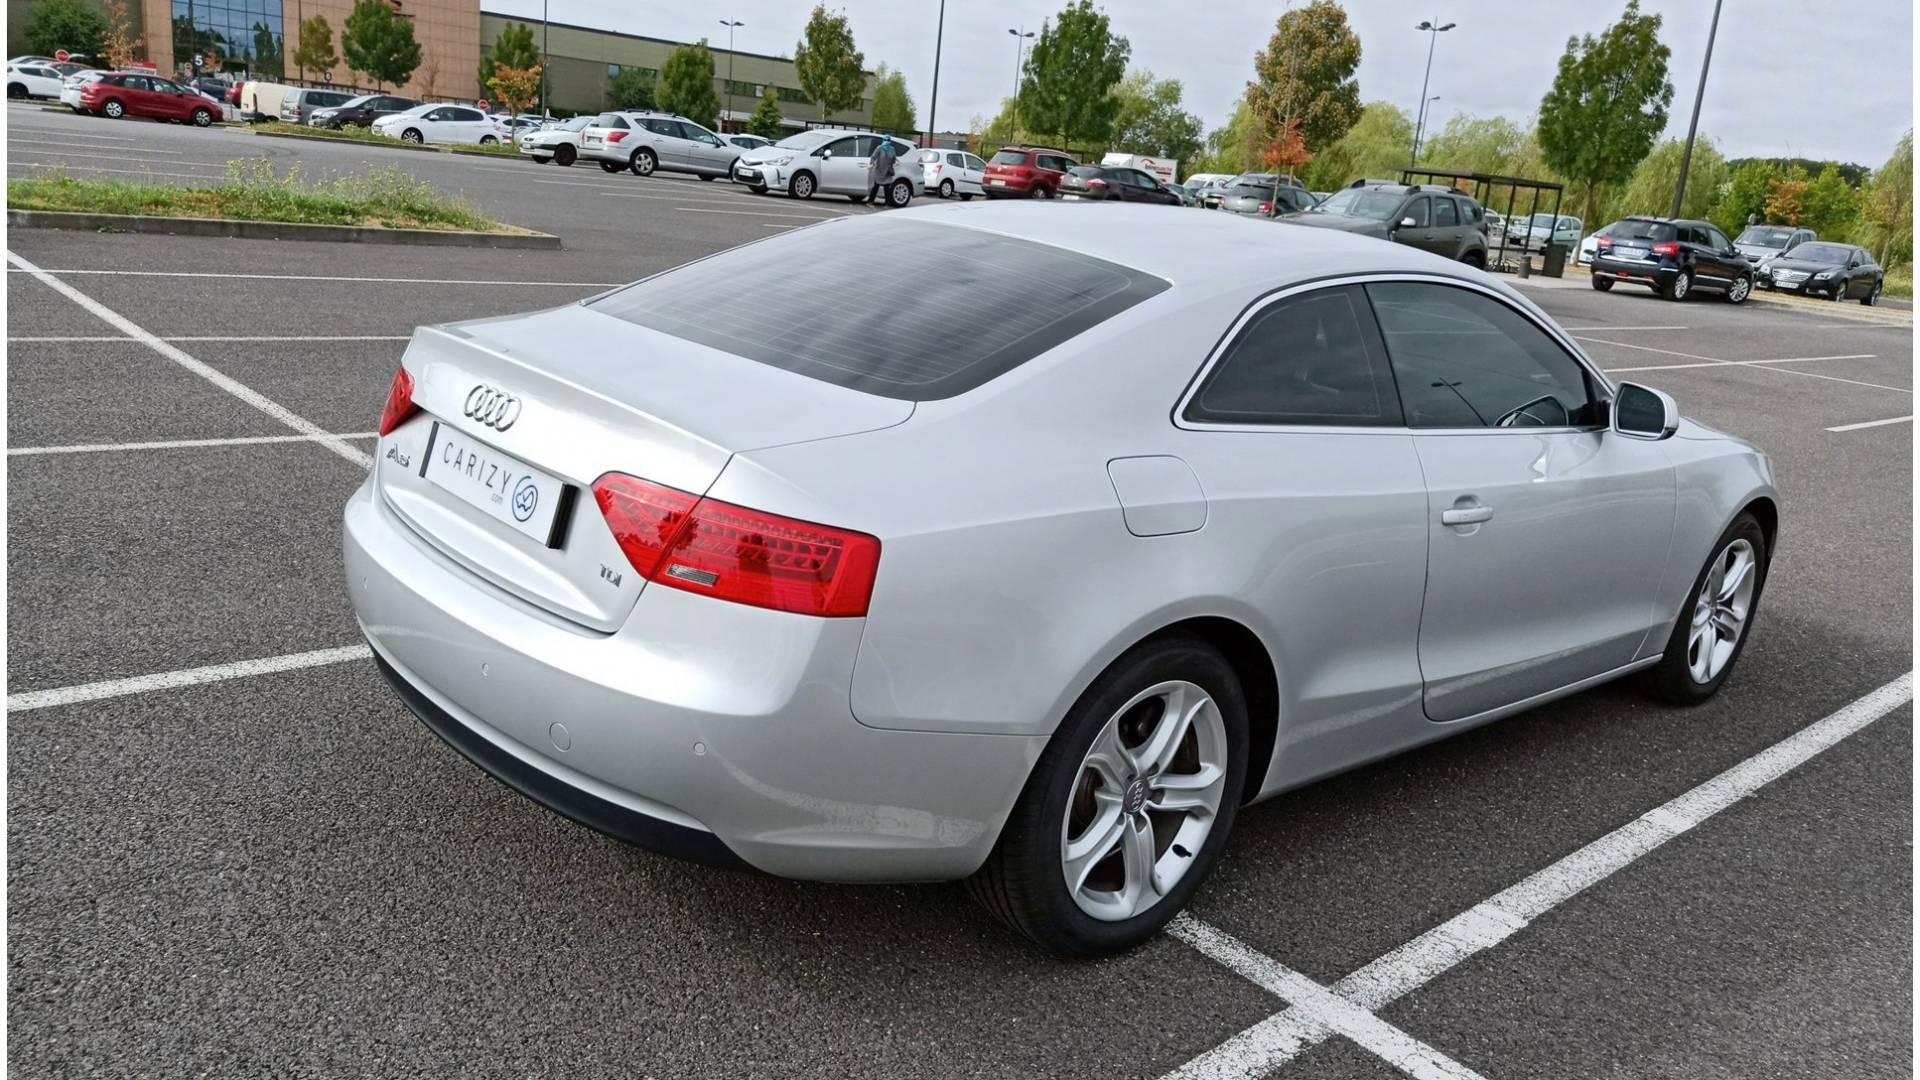 audi a5 d u0026 39 occasion coupe 2 0 tdi 175 ambition luxe